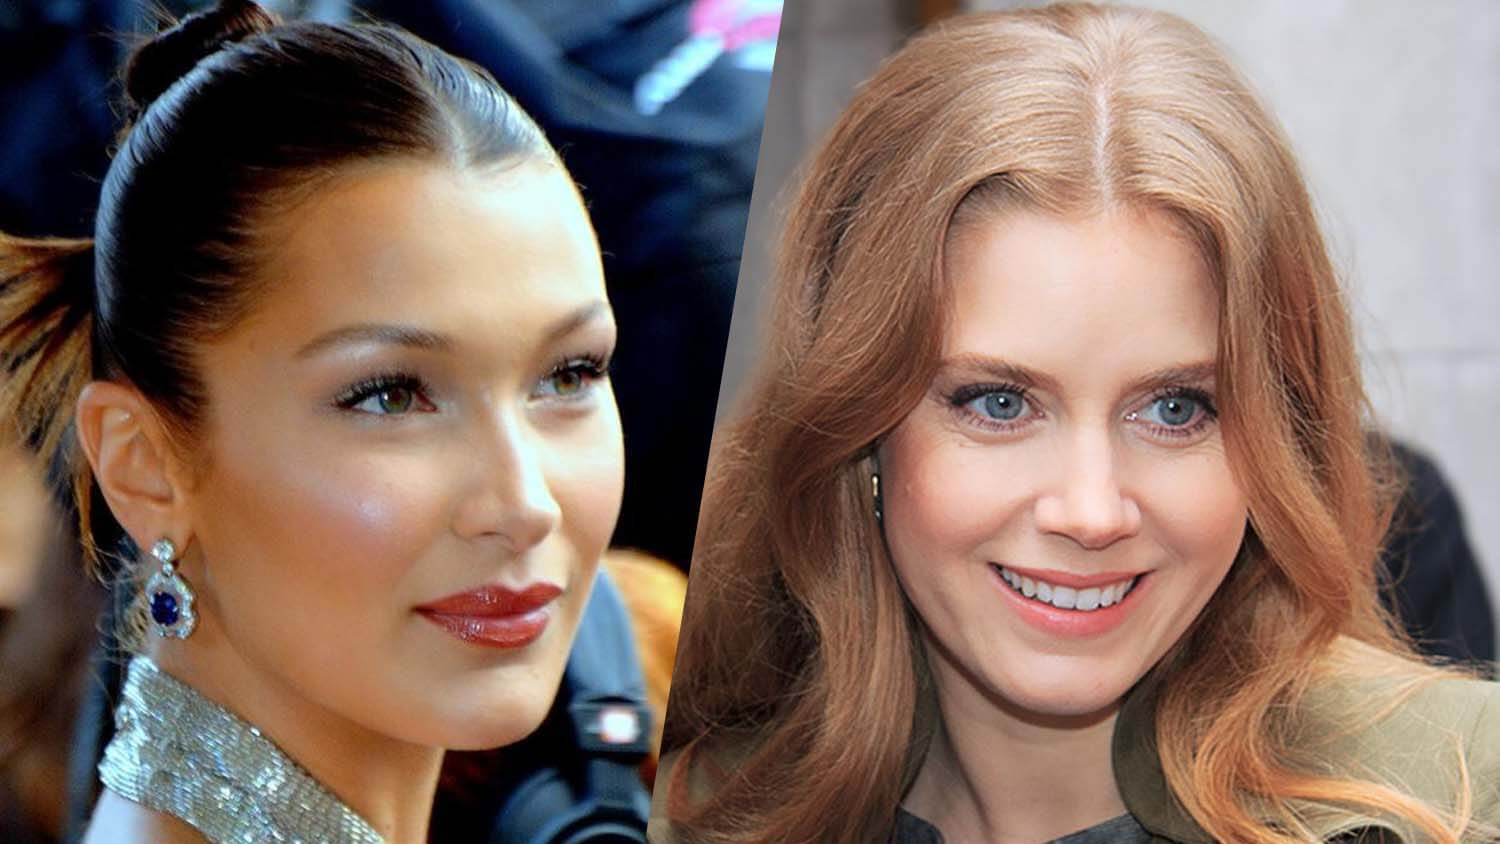 Bella Hadid and Amy Adams Are Obsessed With Faux Fur Fashion 'I Am Furless' By Maya Reik